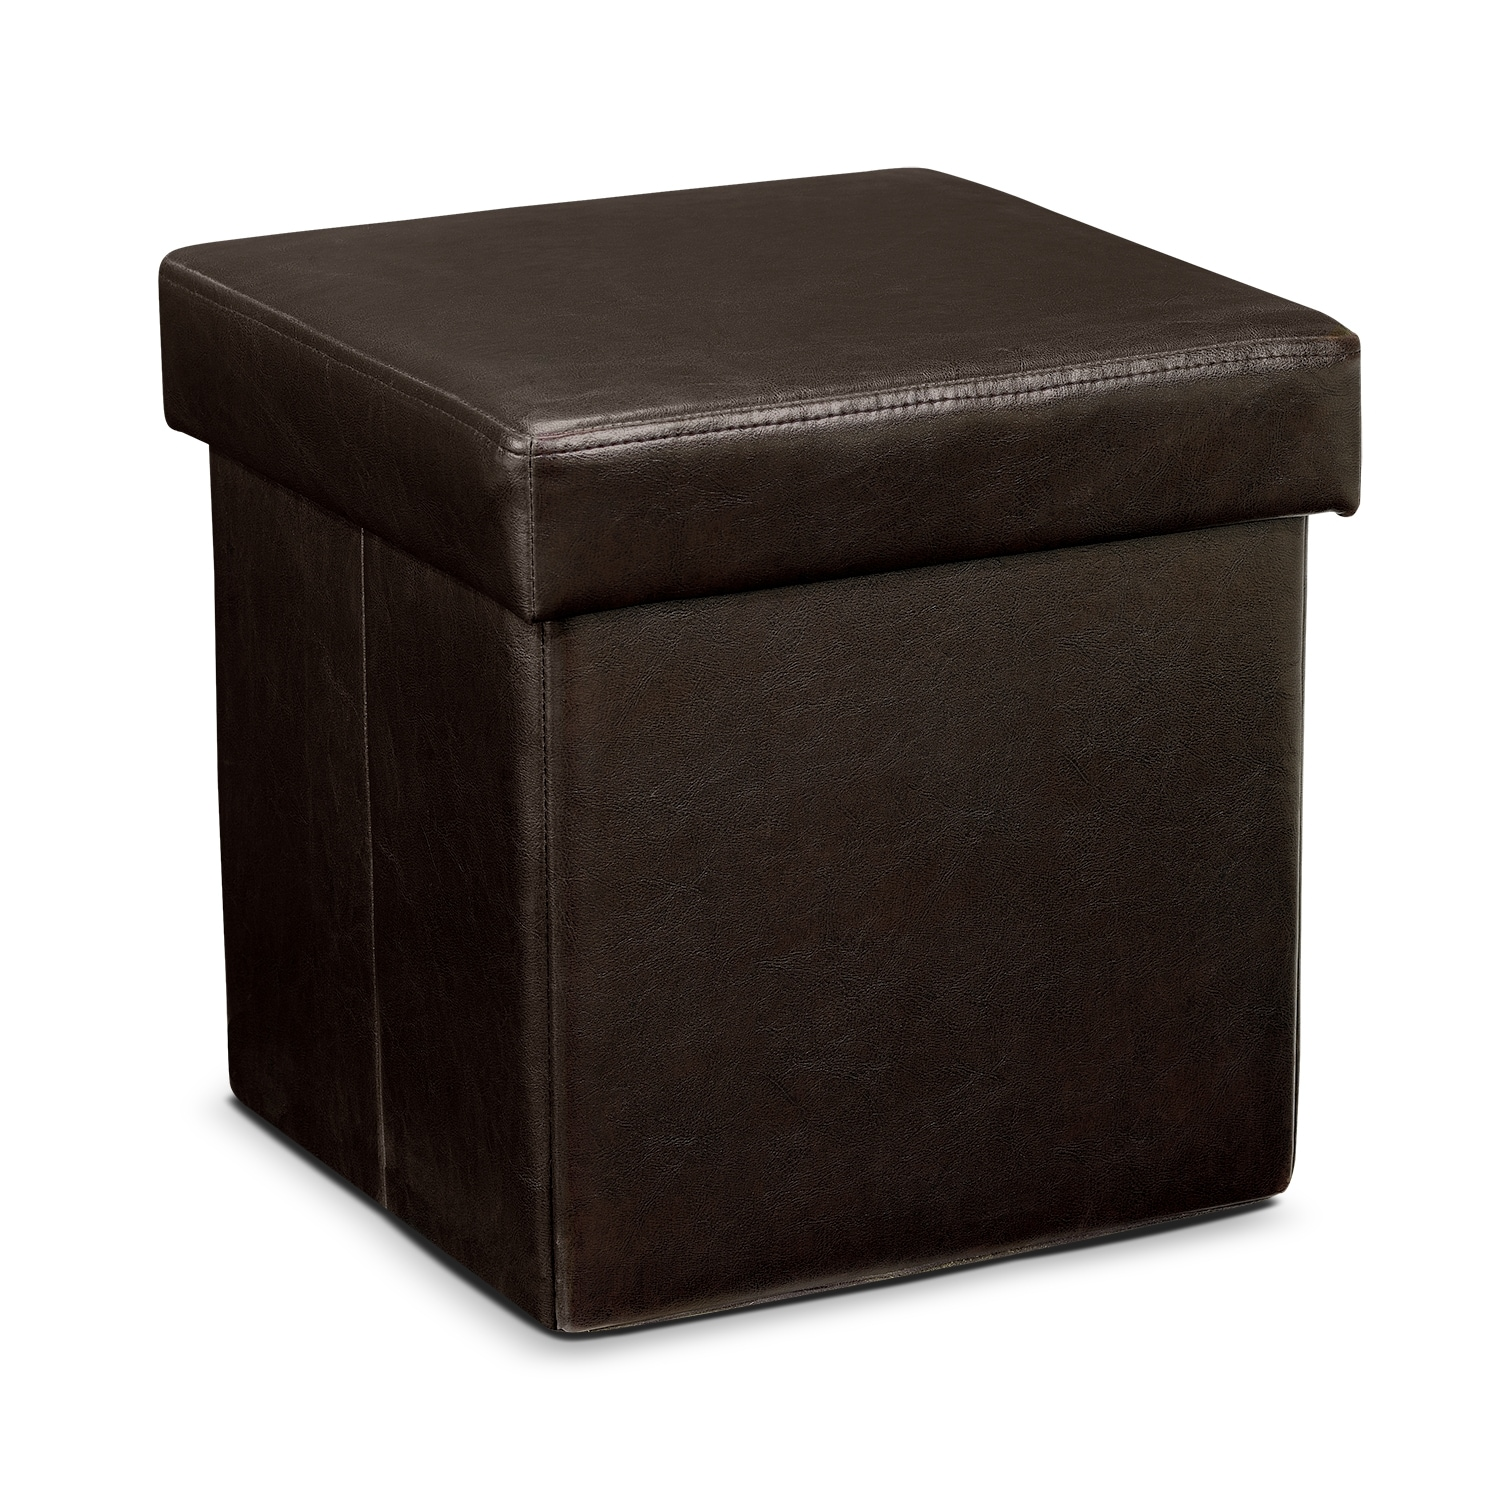 Value City Furniture Sofa Bed Leigh Upholstery Folding Cube Ottoman - Value City Furniture